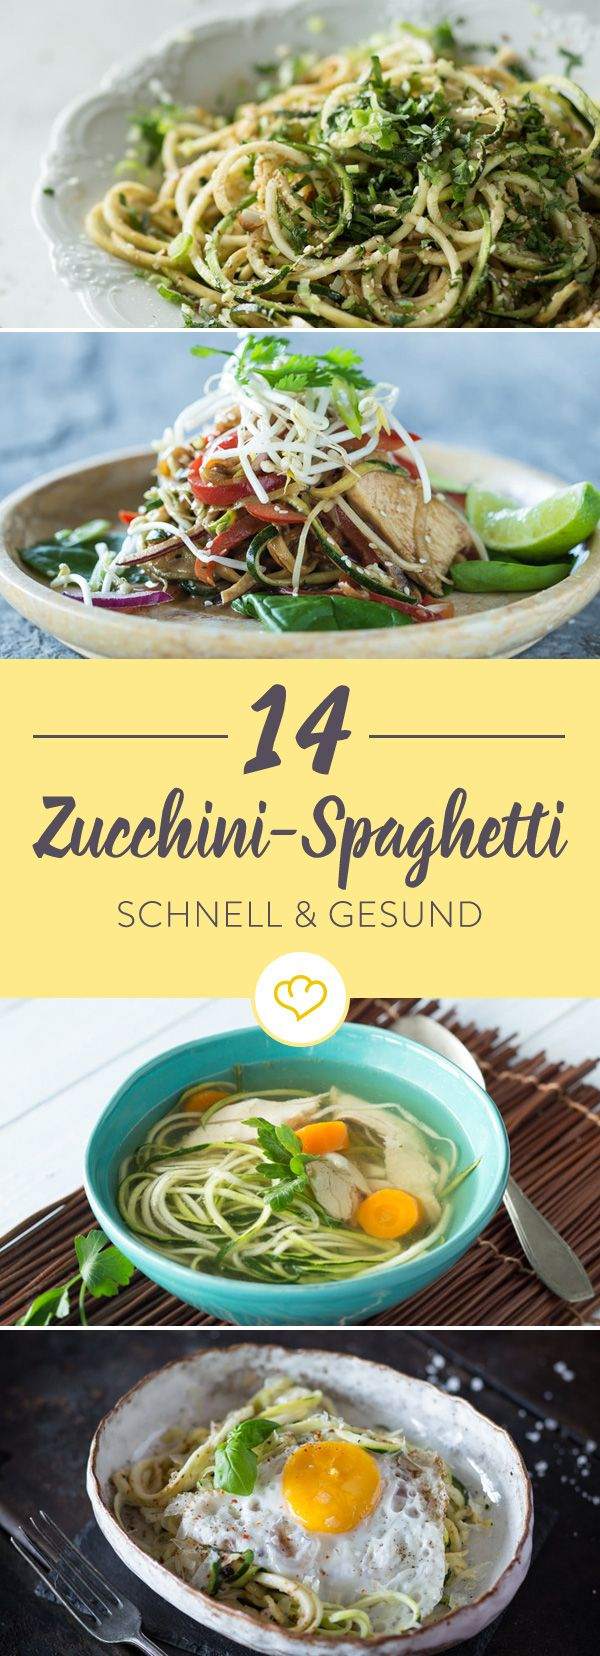 Photo of Zucchini spaghetti recipes: 14 times green-healthy pasta love